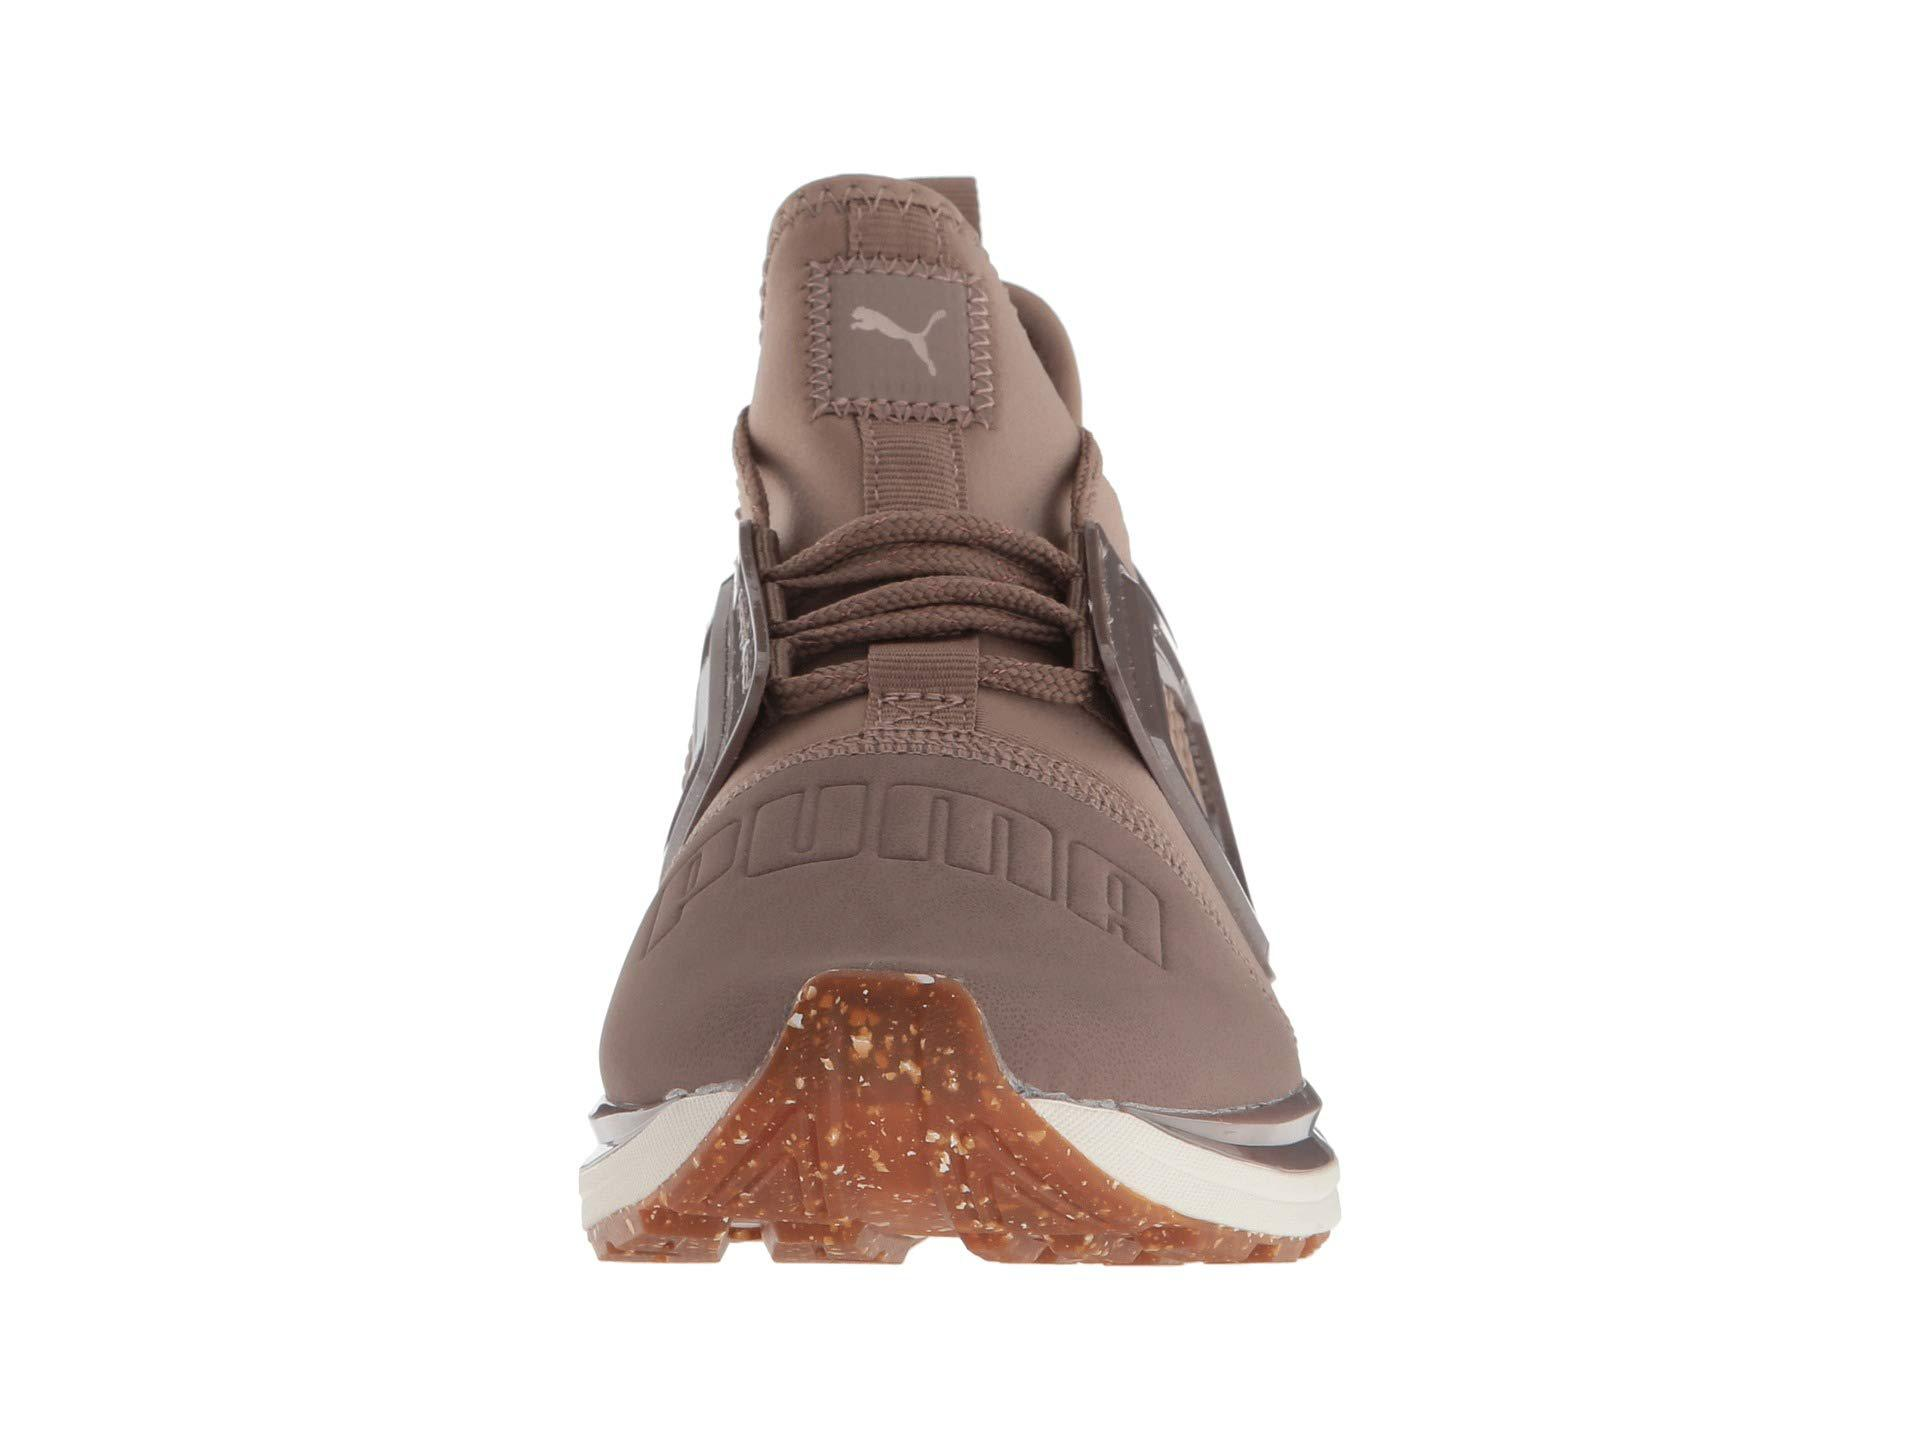 dd58ff64b262f4 Lyst - PUMA Ignite Limitless 2 Crafted (taupe Gray rose Gold ...